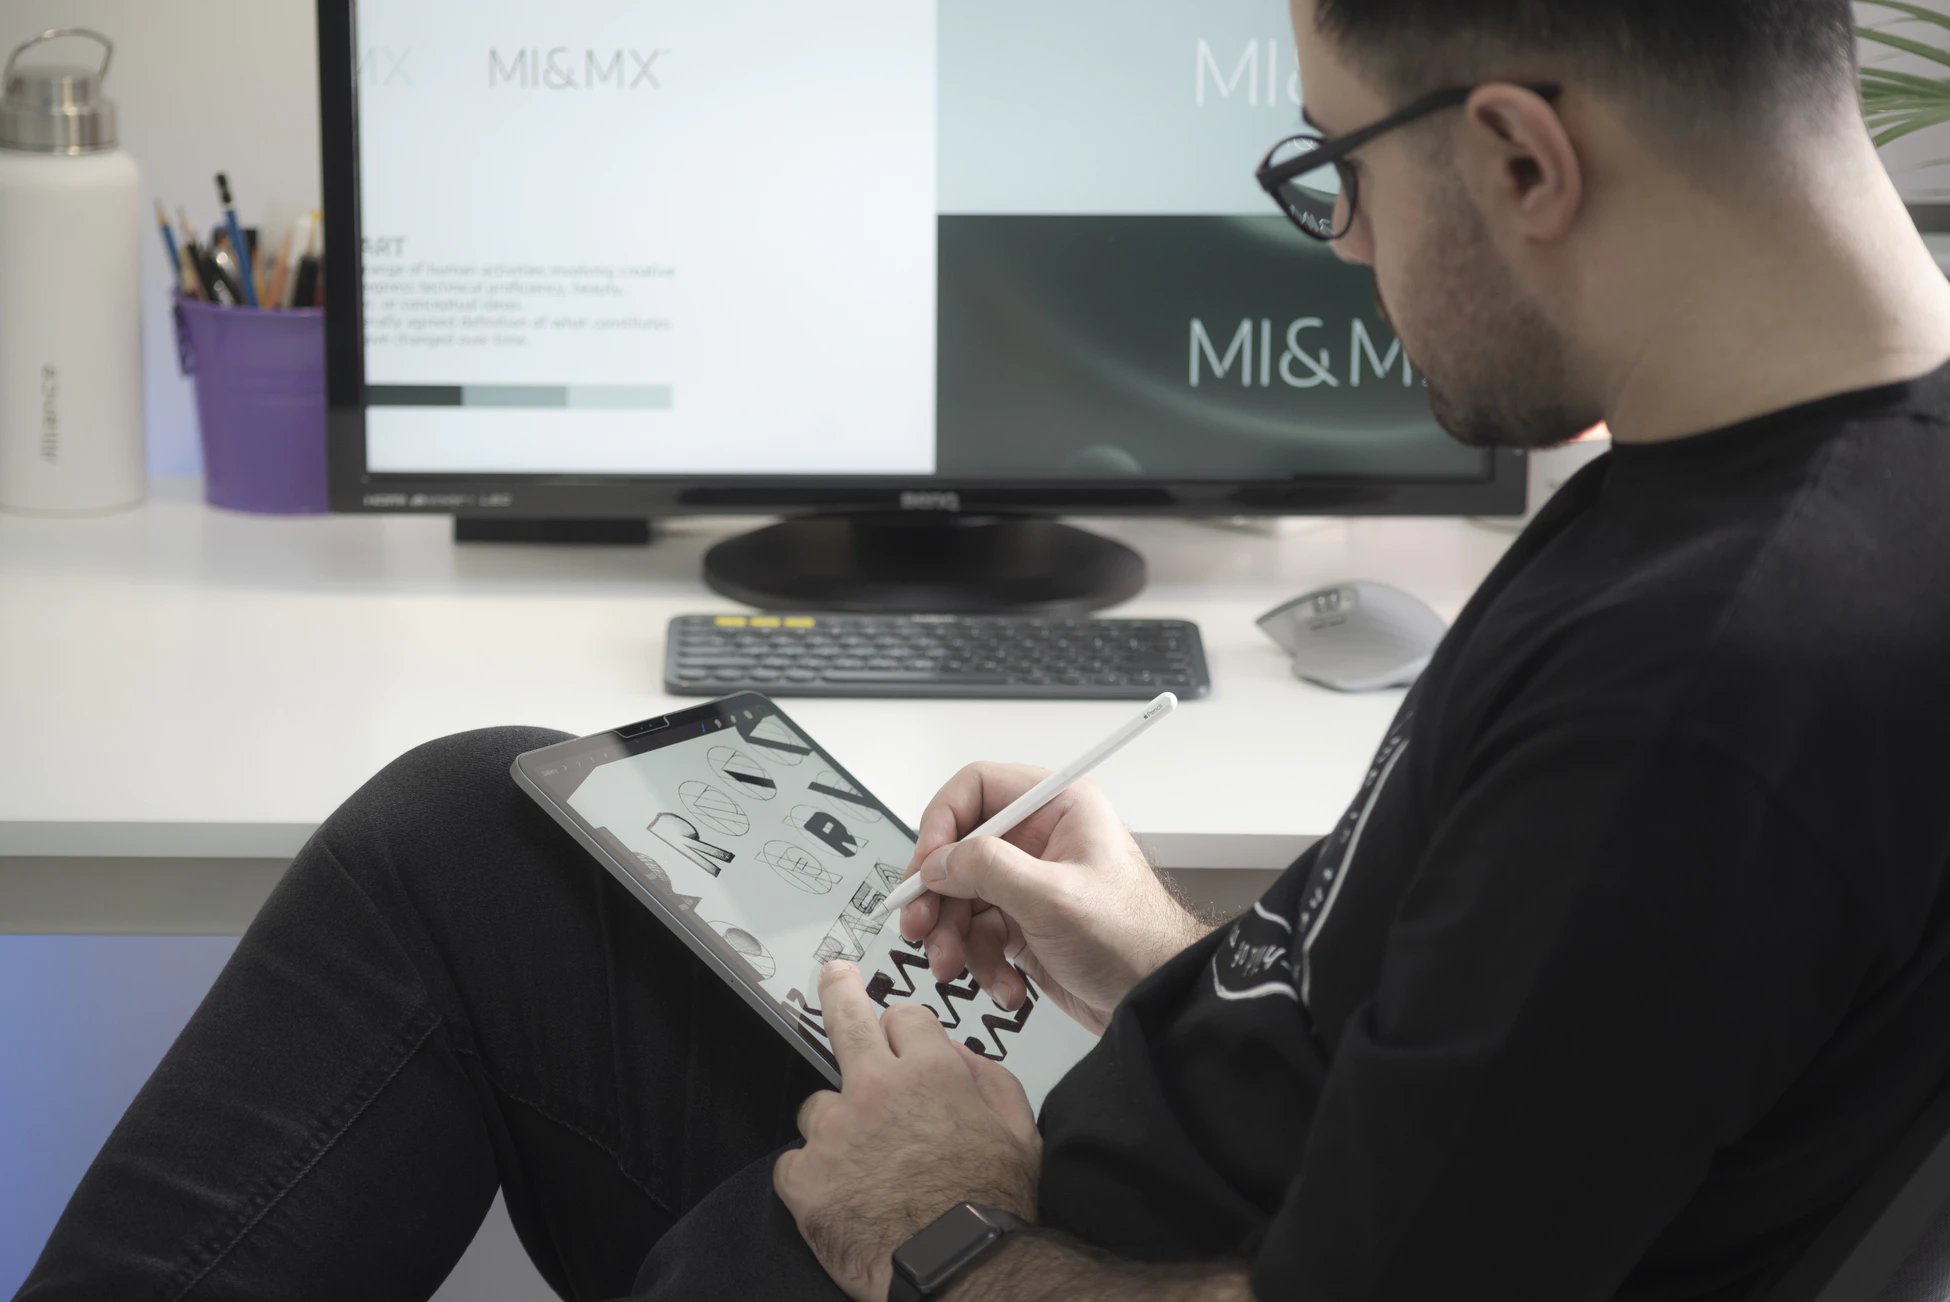 graphic designer jobs that you can do on the road.